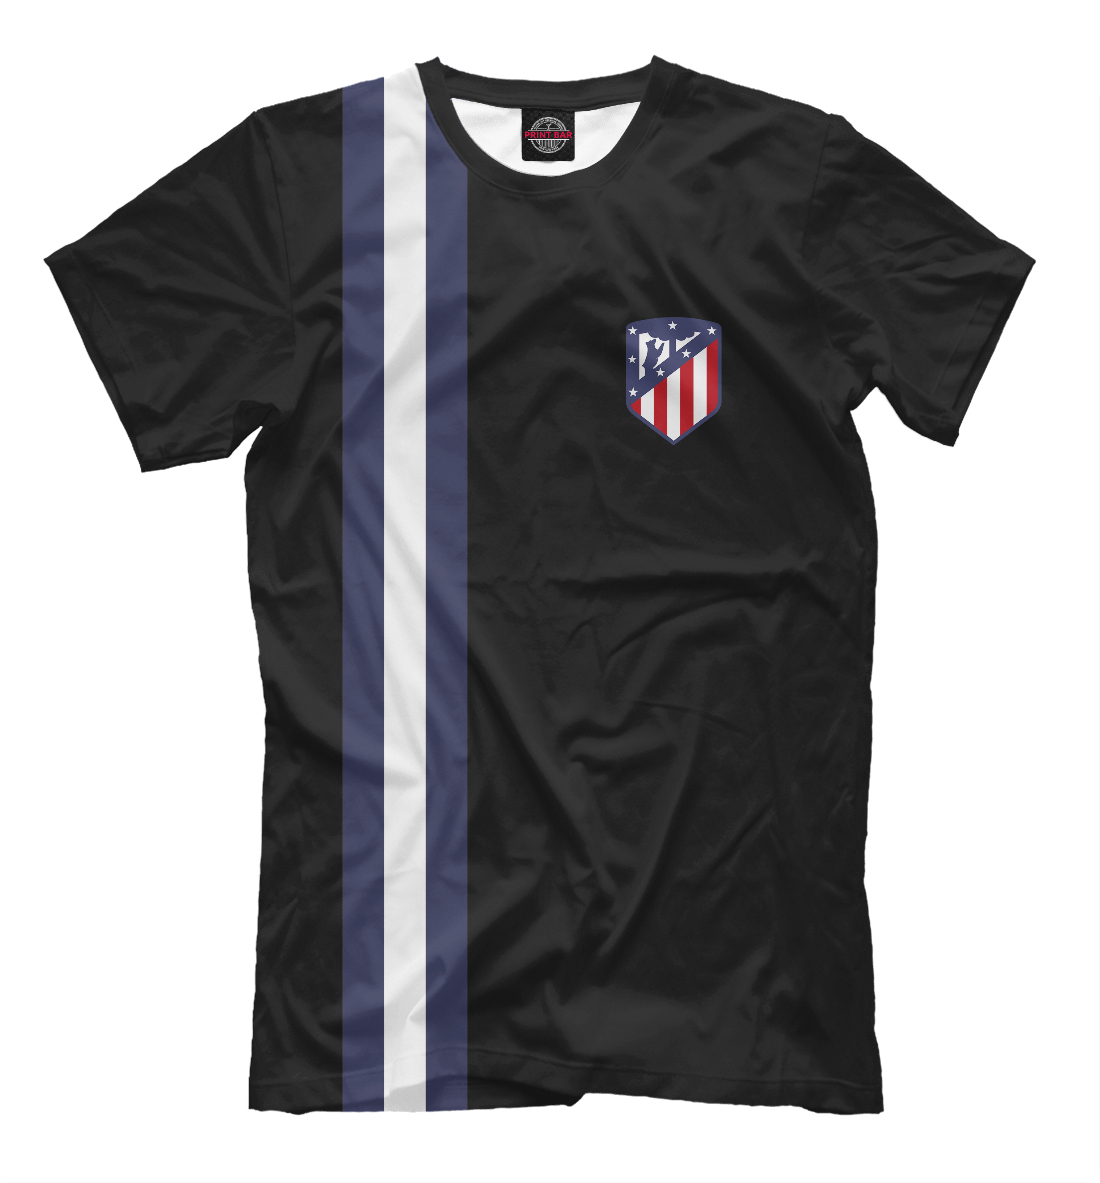 Купить Atletico Madrid Line Edition, Printbar, Футболки, ATL-194671-fut-2